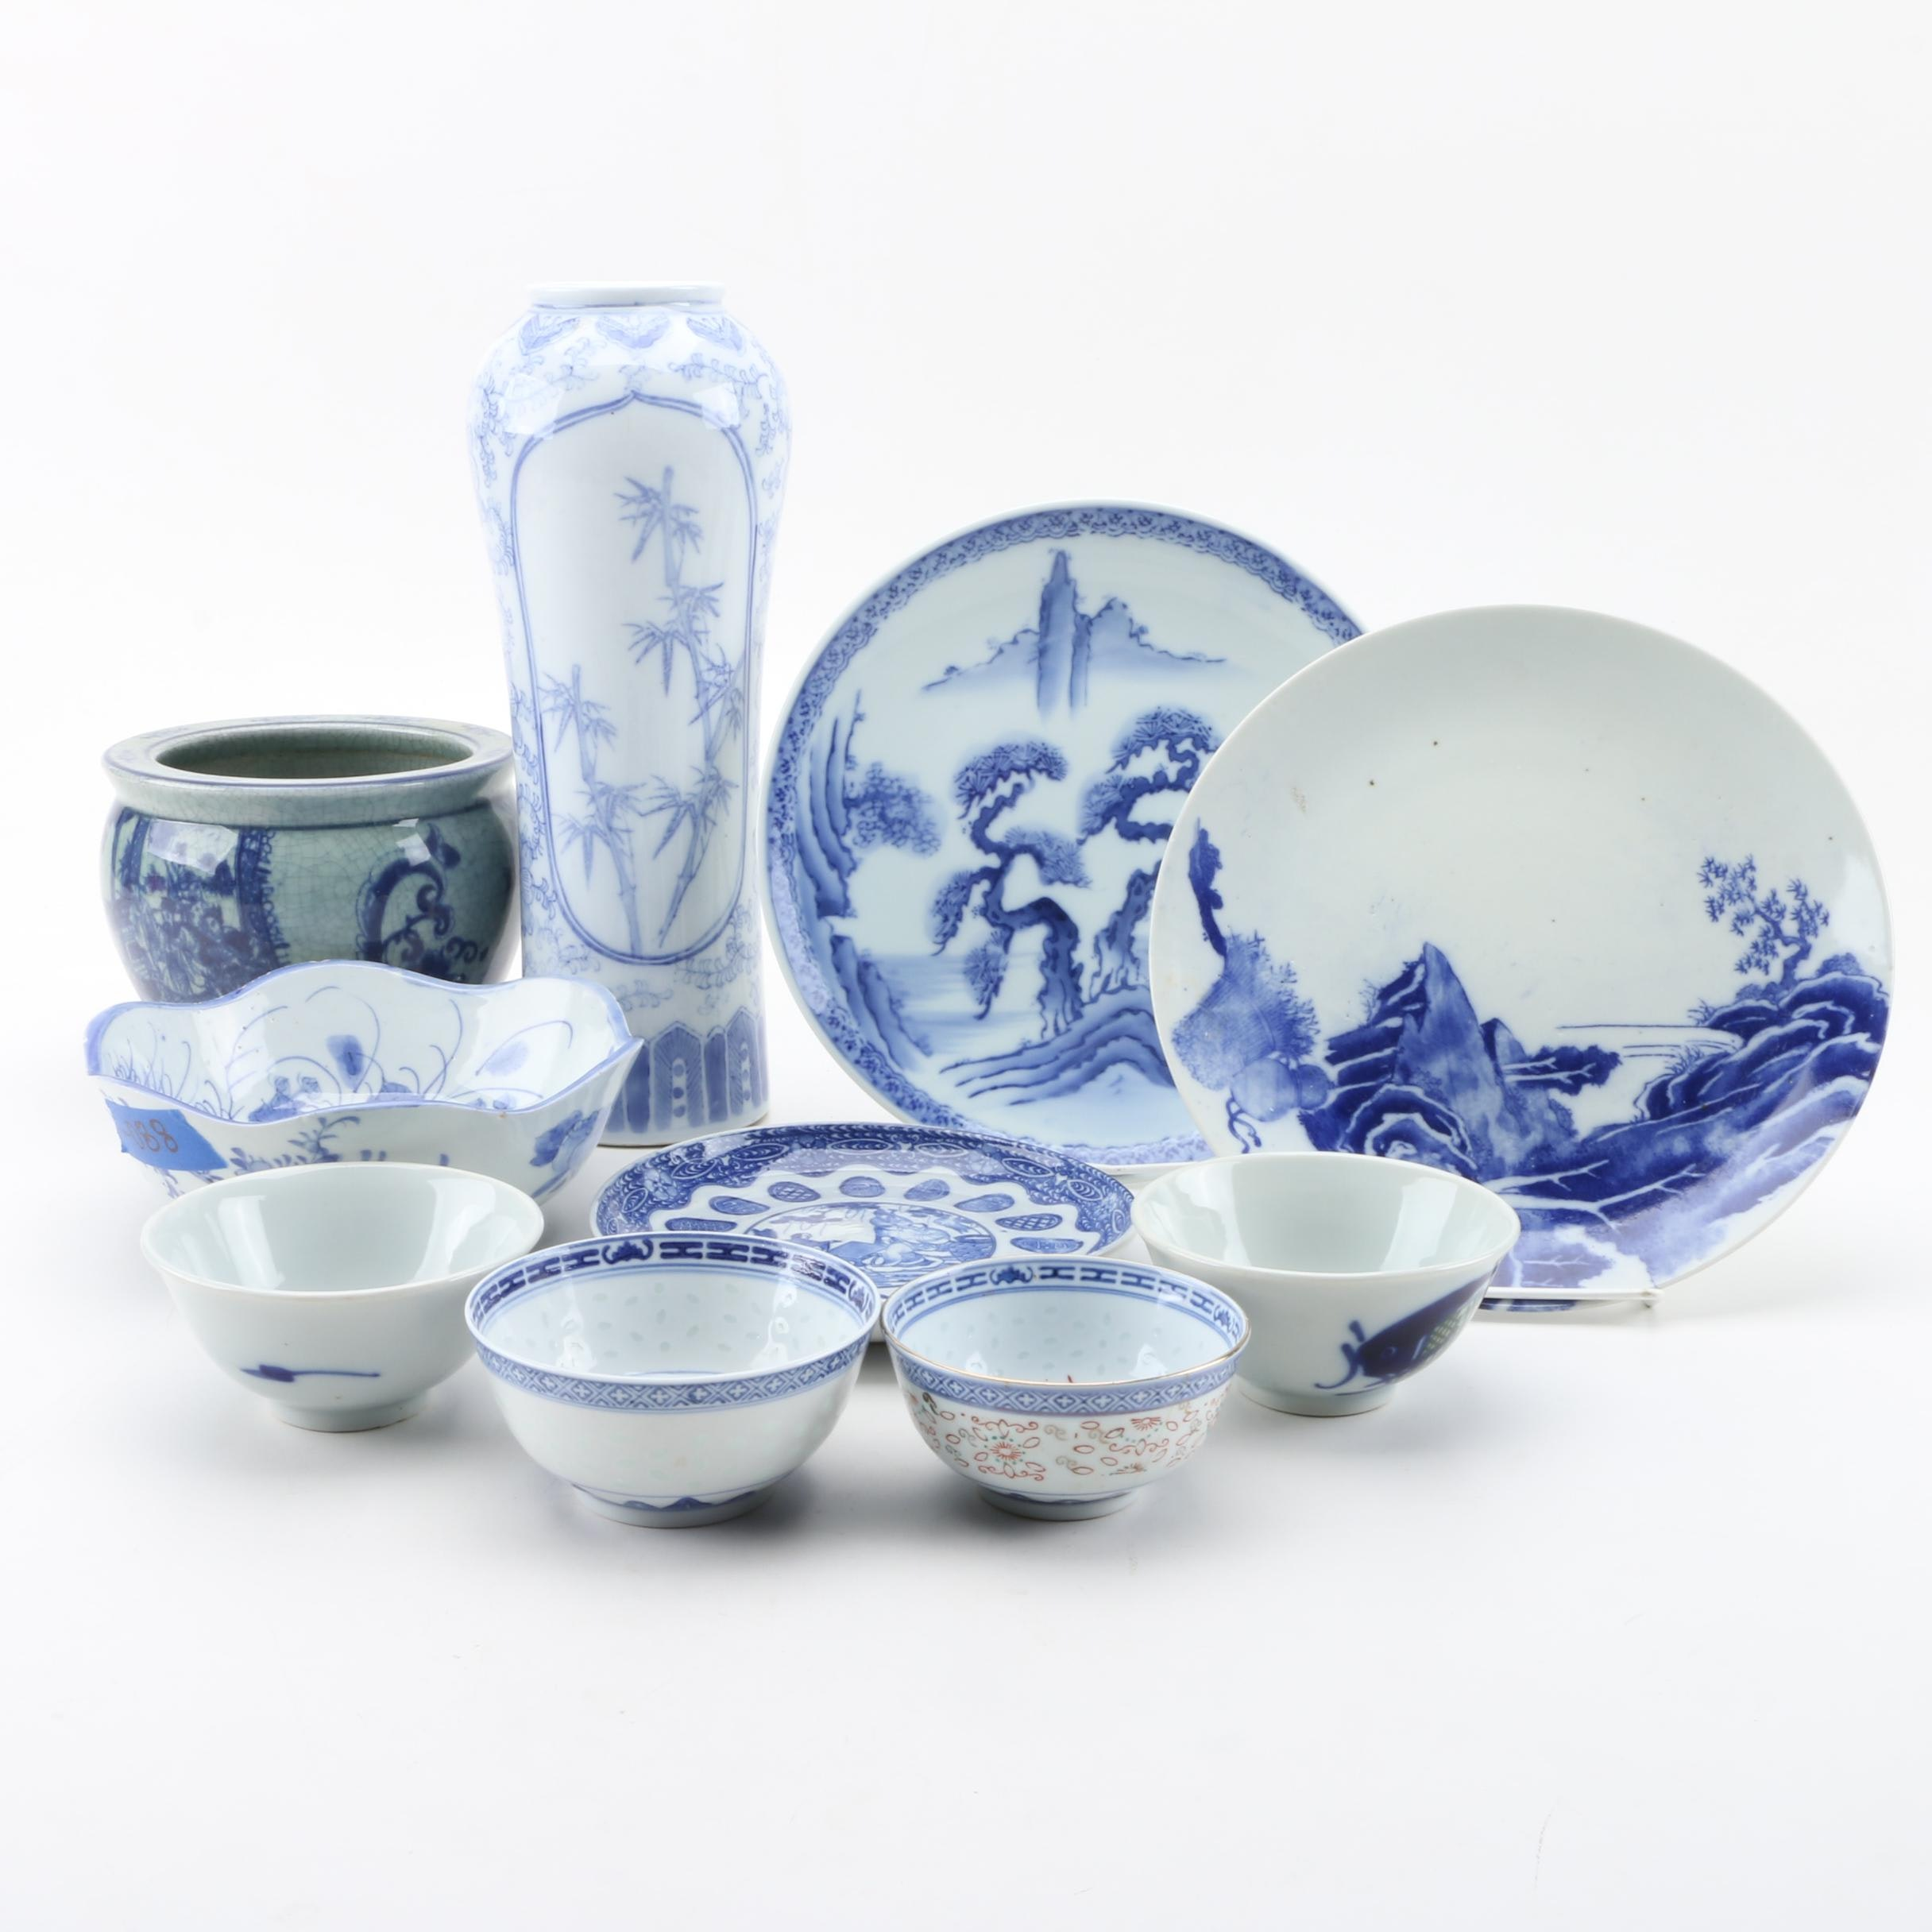 Japanese and Chinese Porcelain Tableware